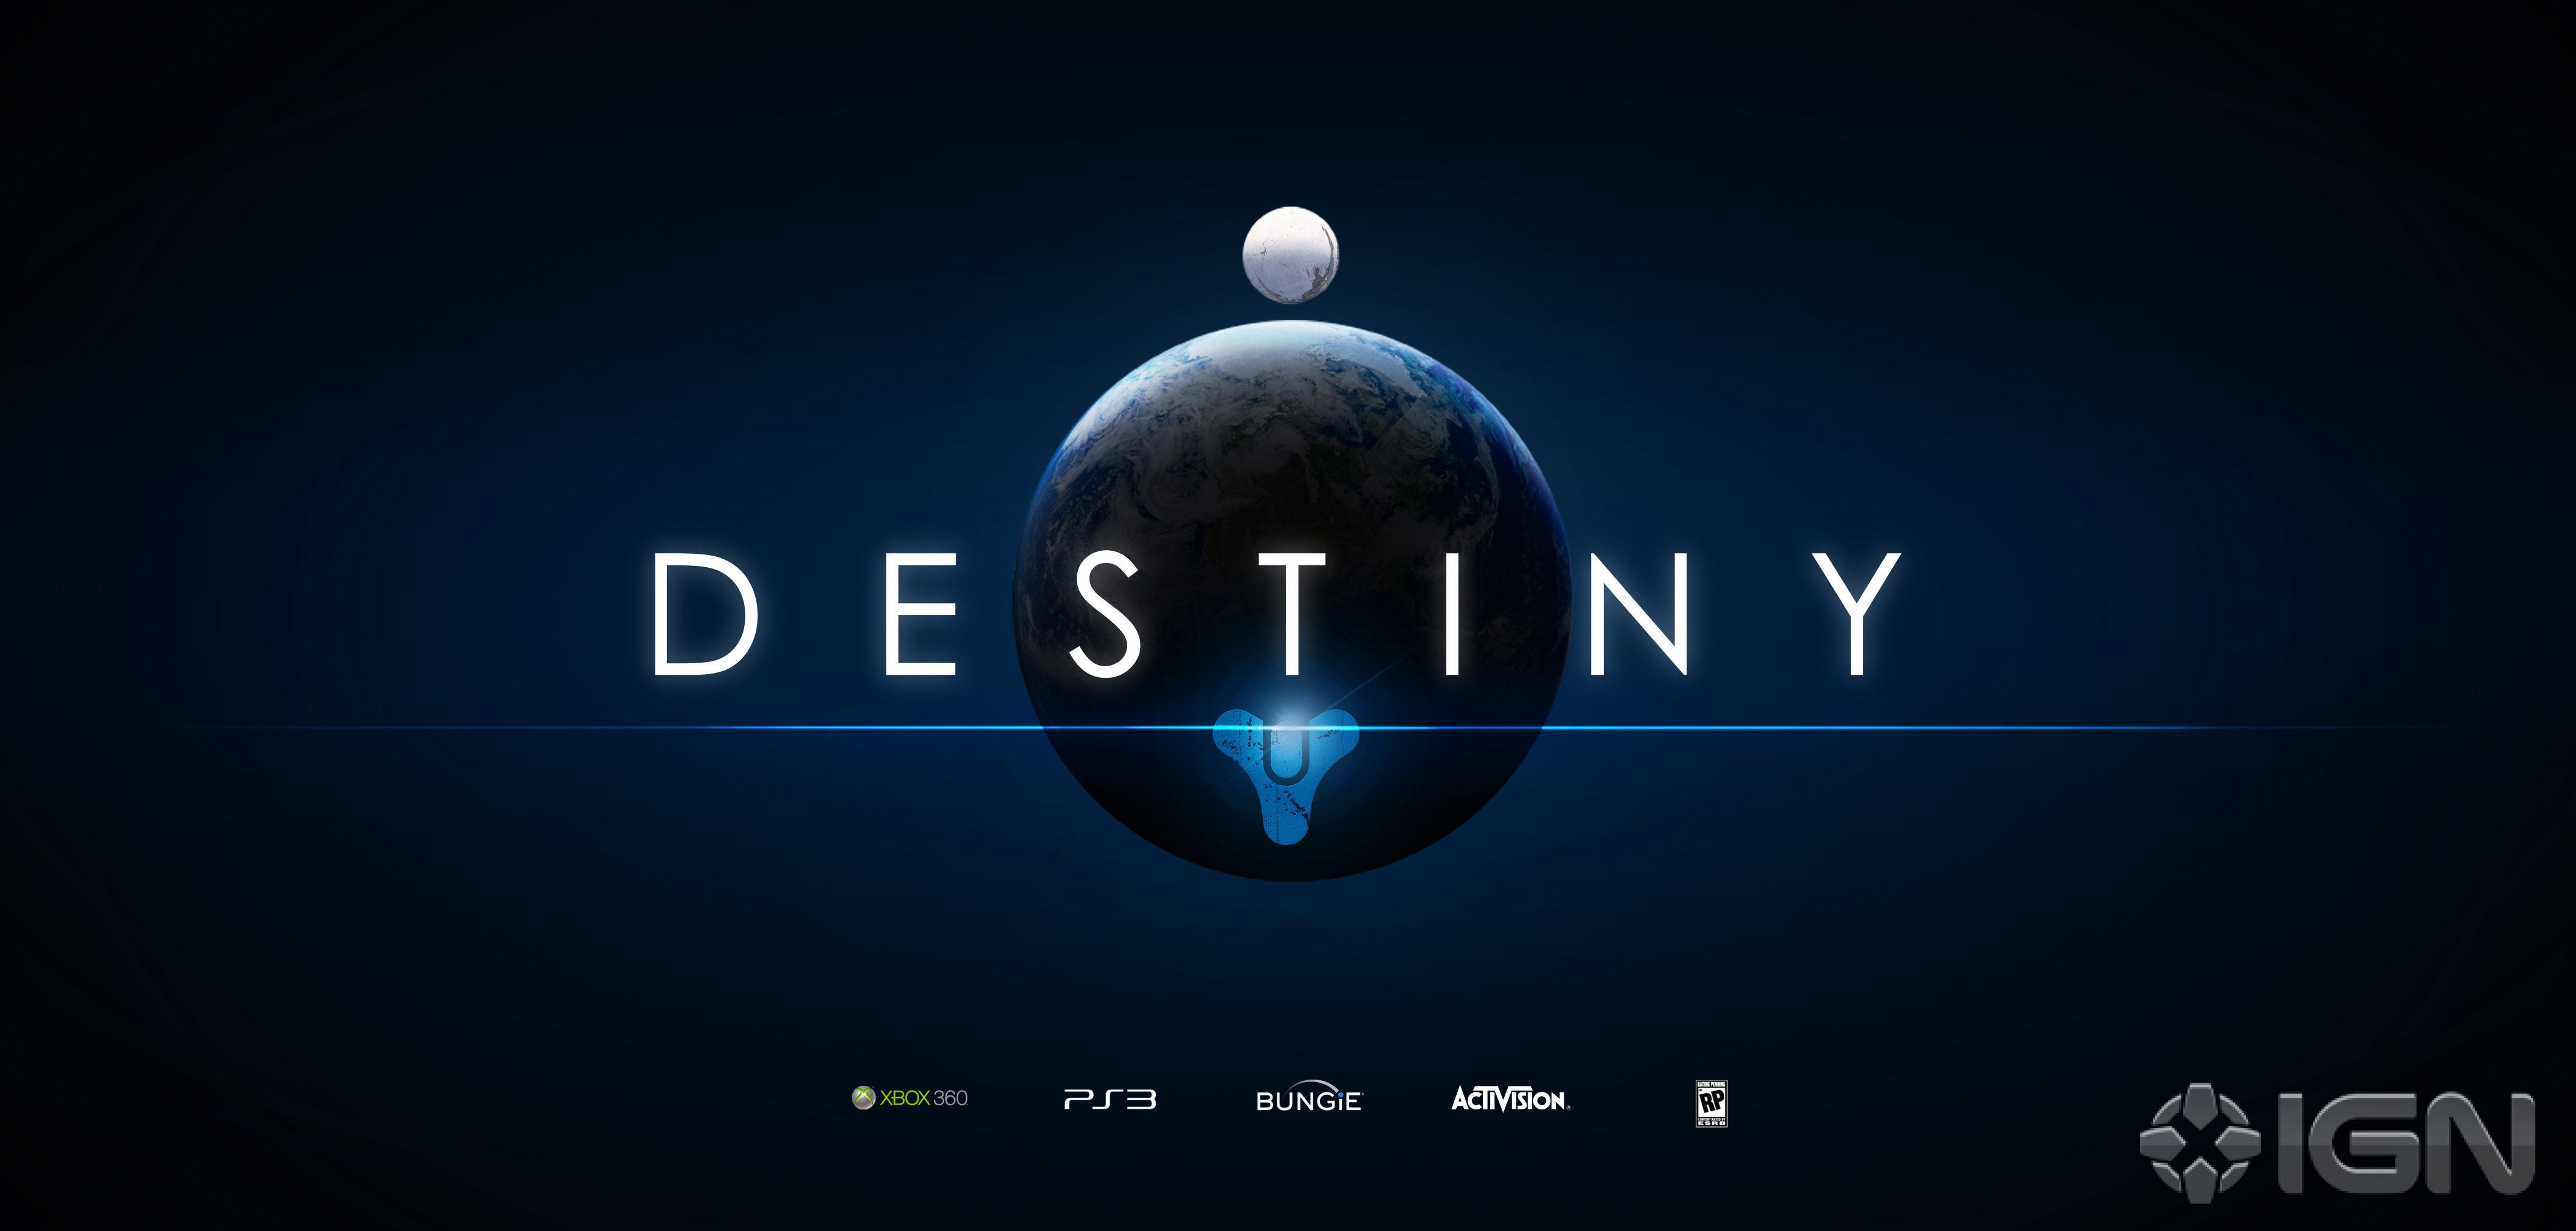 ... was actually provided by Bungie, who said in response to this leak